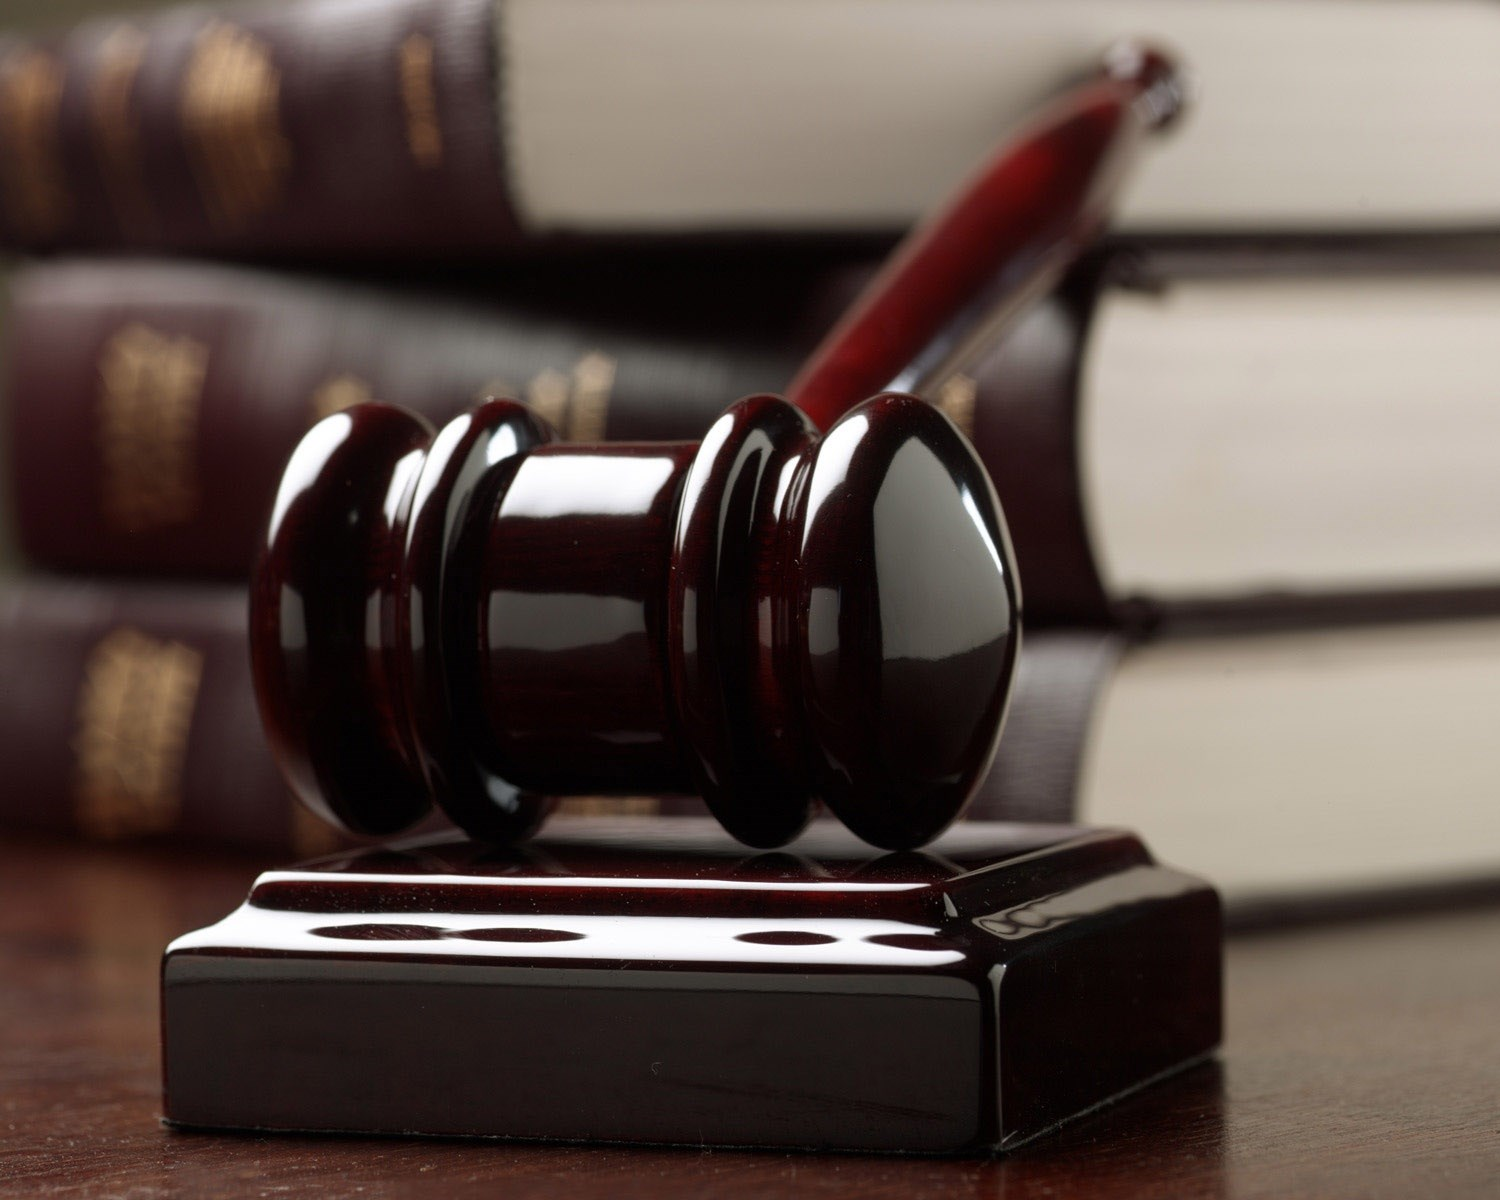 Amarin sued the FDA in May.